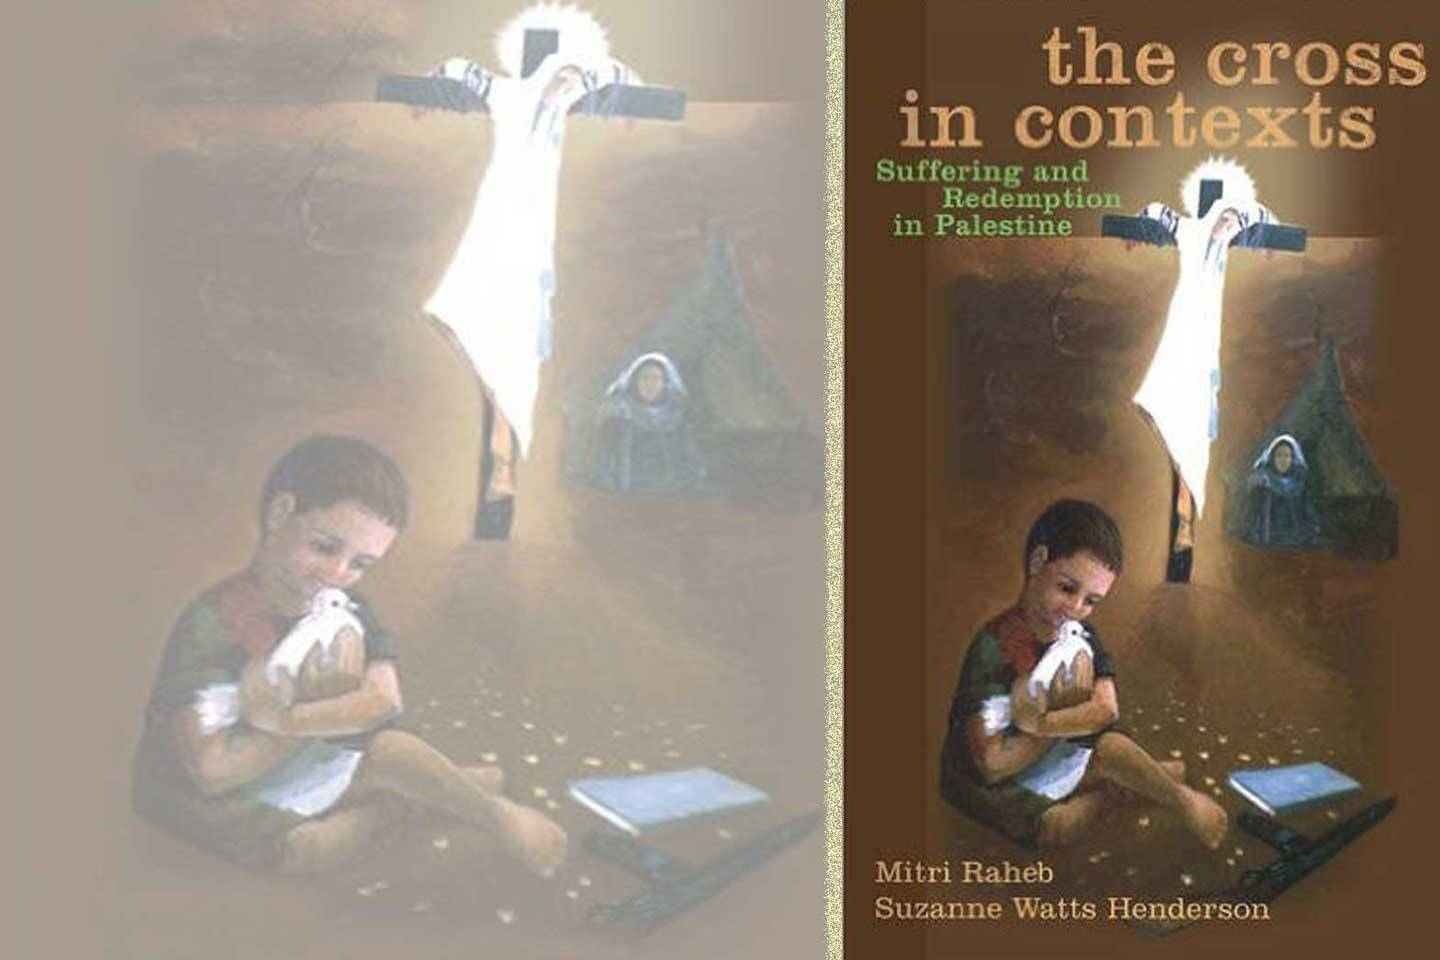 New release: just in time for Lent!